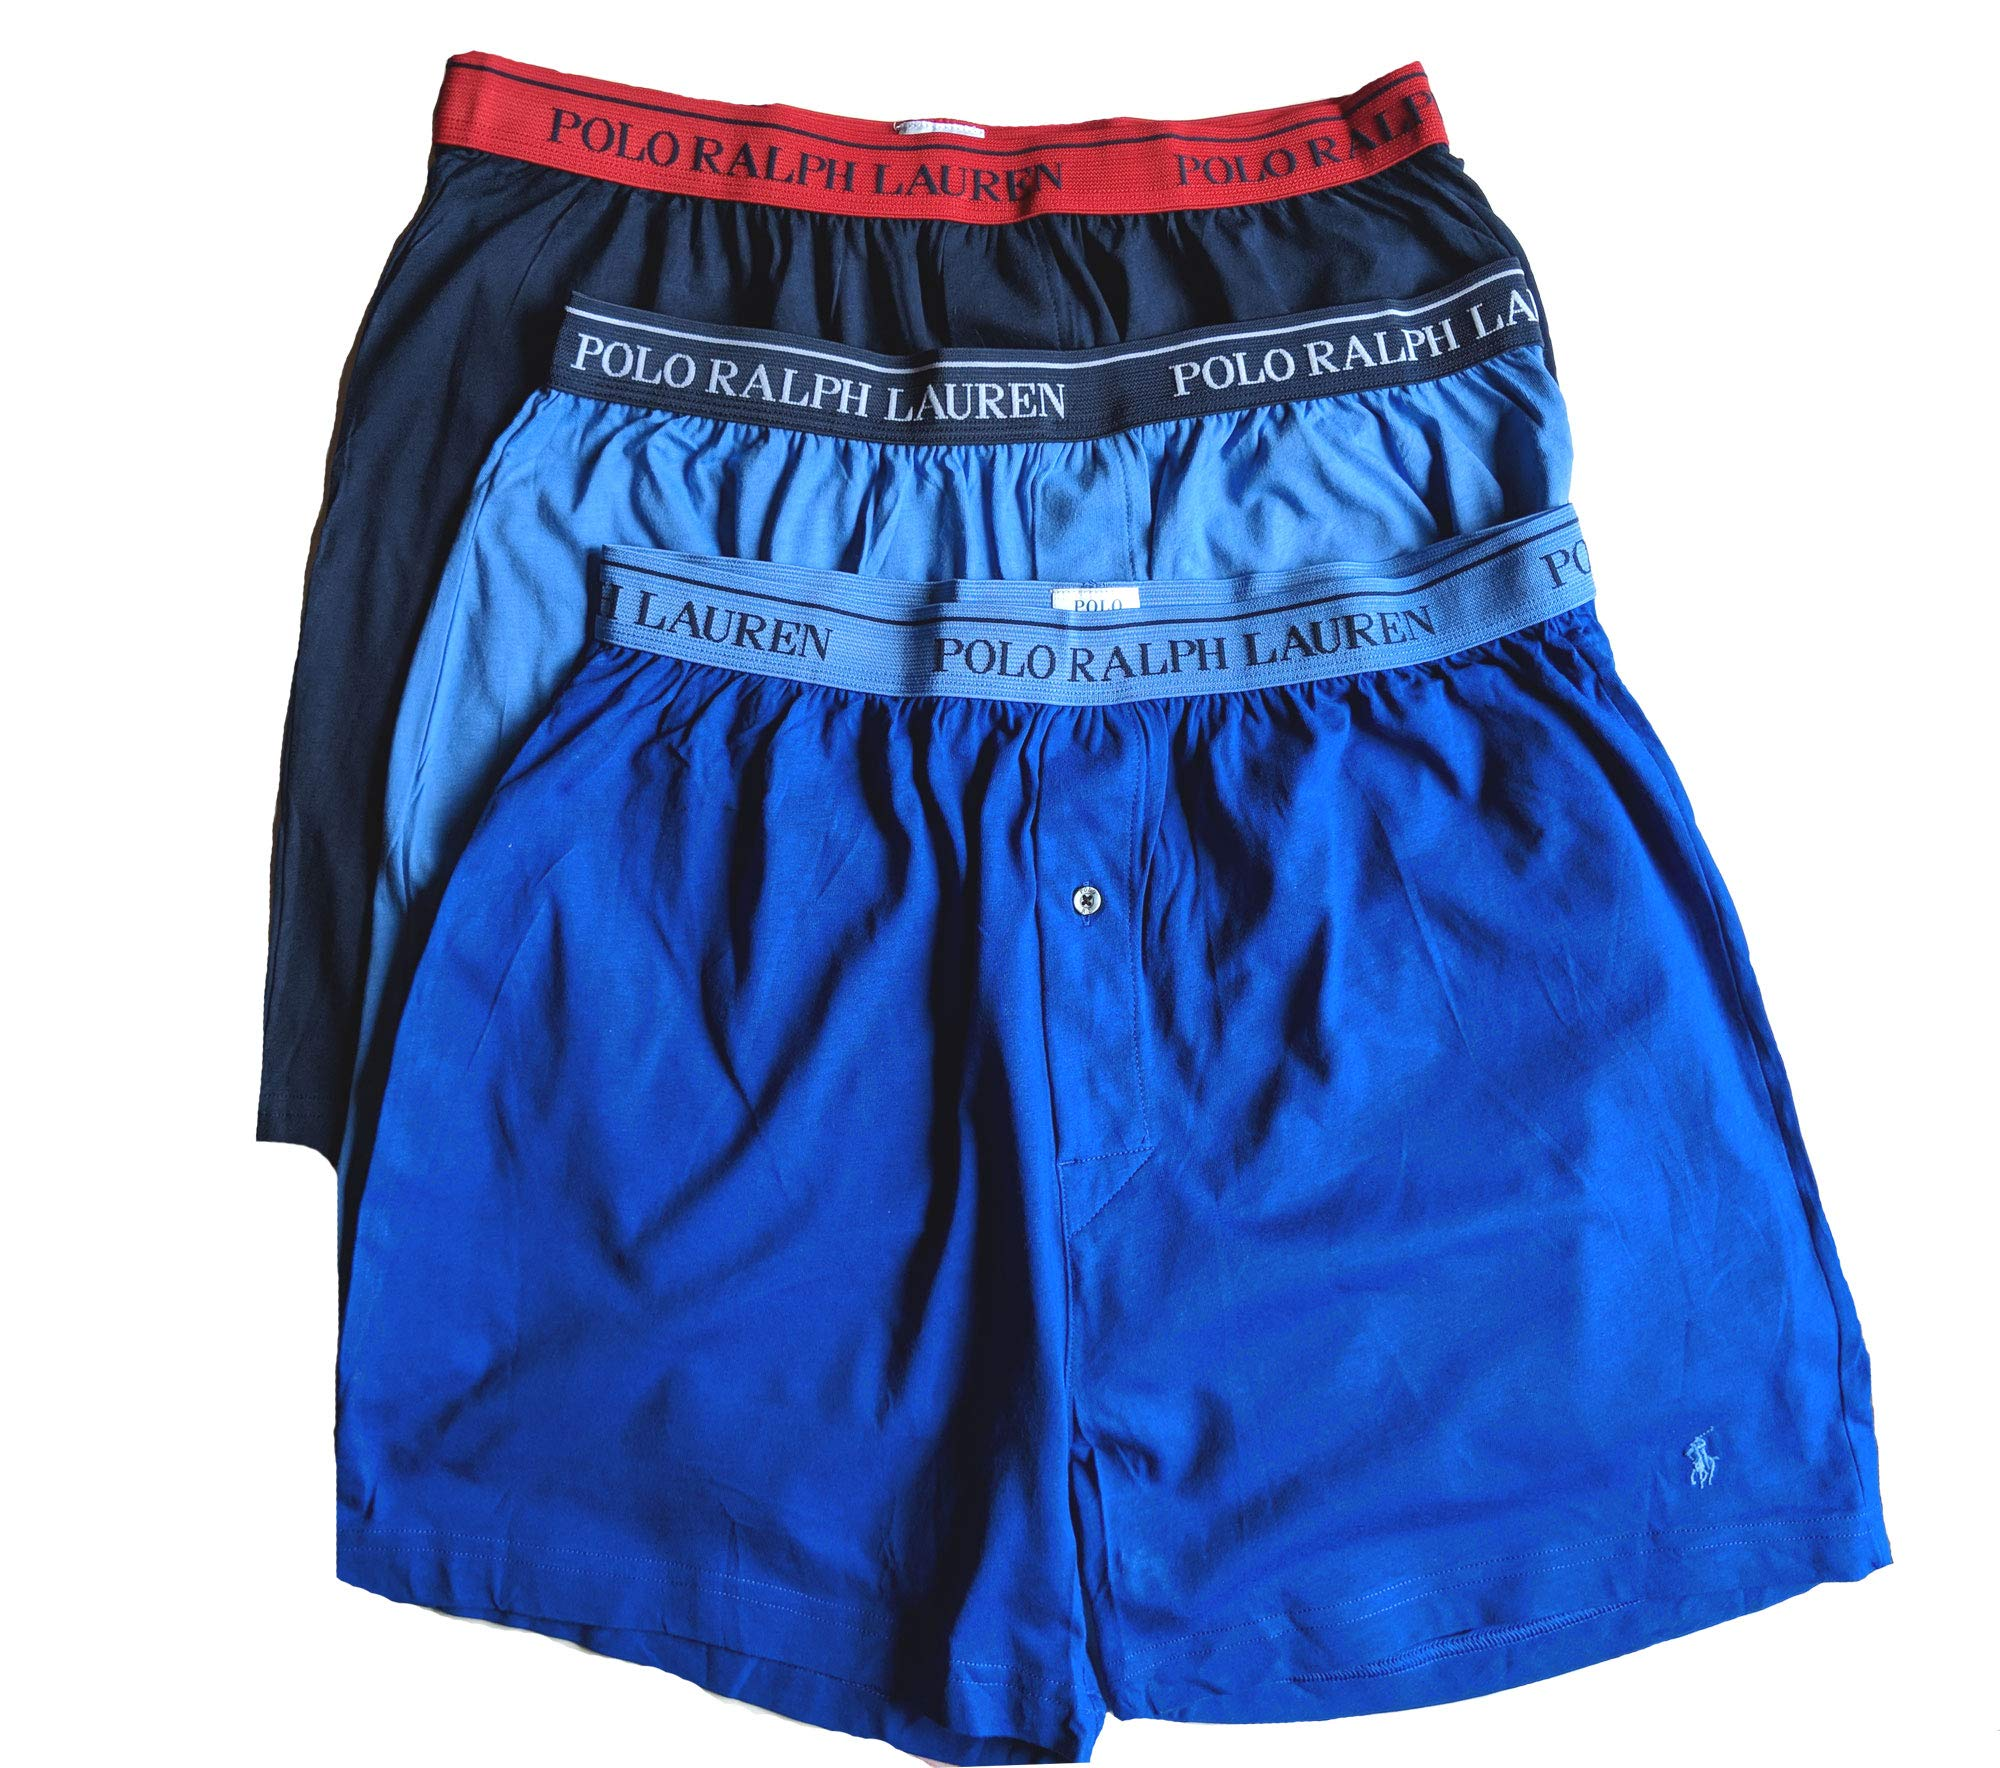 Boxers Classic Men's Fit Polo Royalcruise Aerial Navy 3 Bluerugby Lauren Ralph Xx Wwicking Knit Pack Large 7Ibv6yfYgm